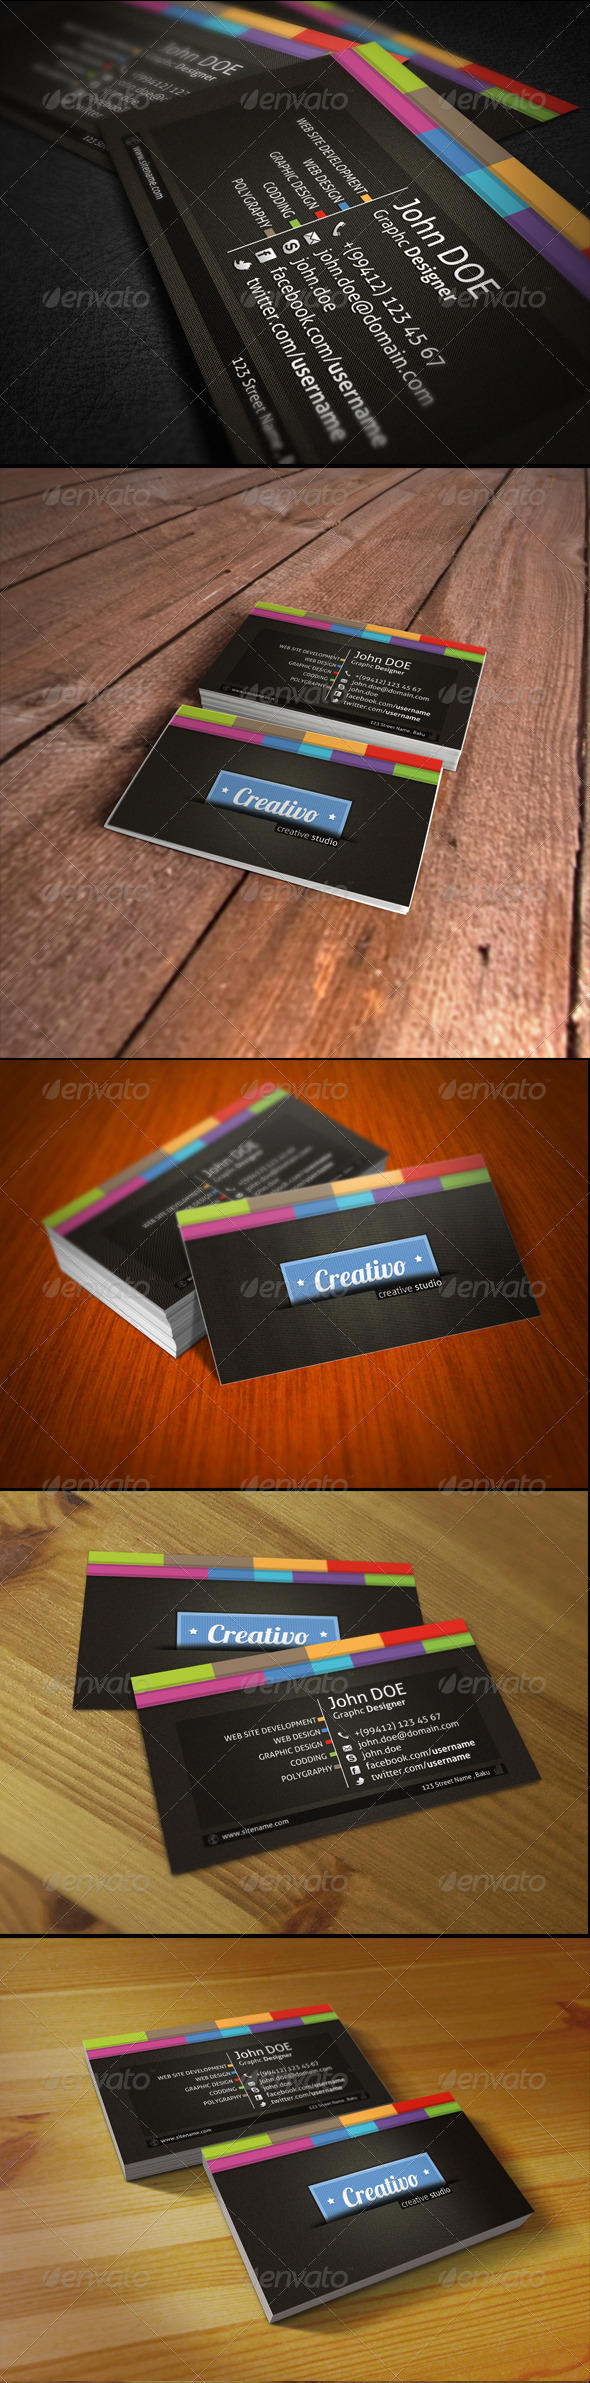 GraphicRiver Creativo Business Card 1570959